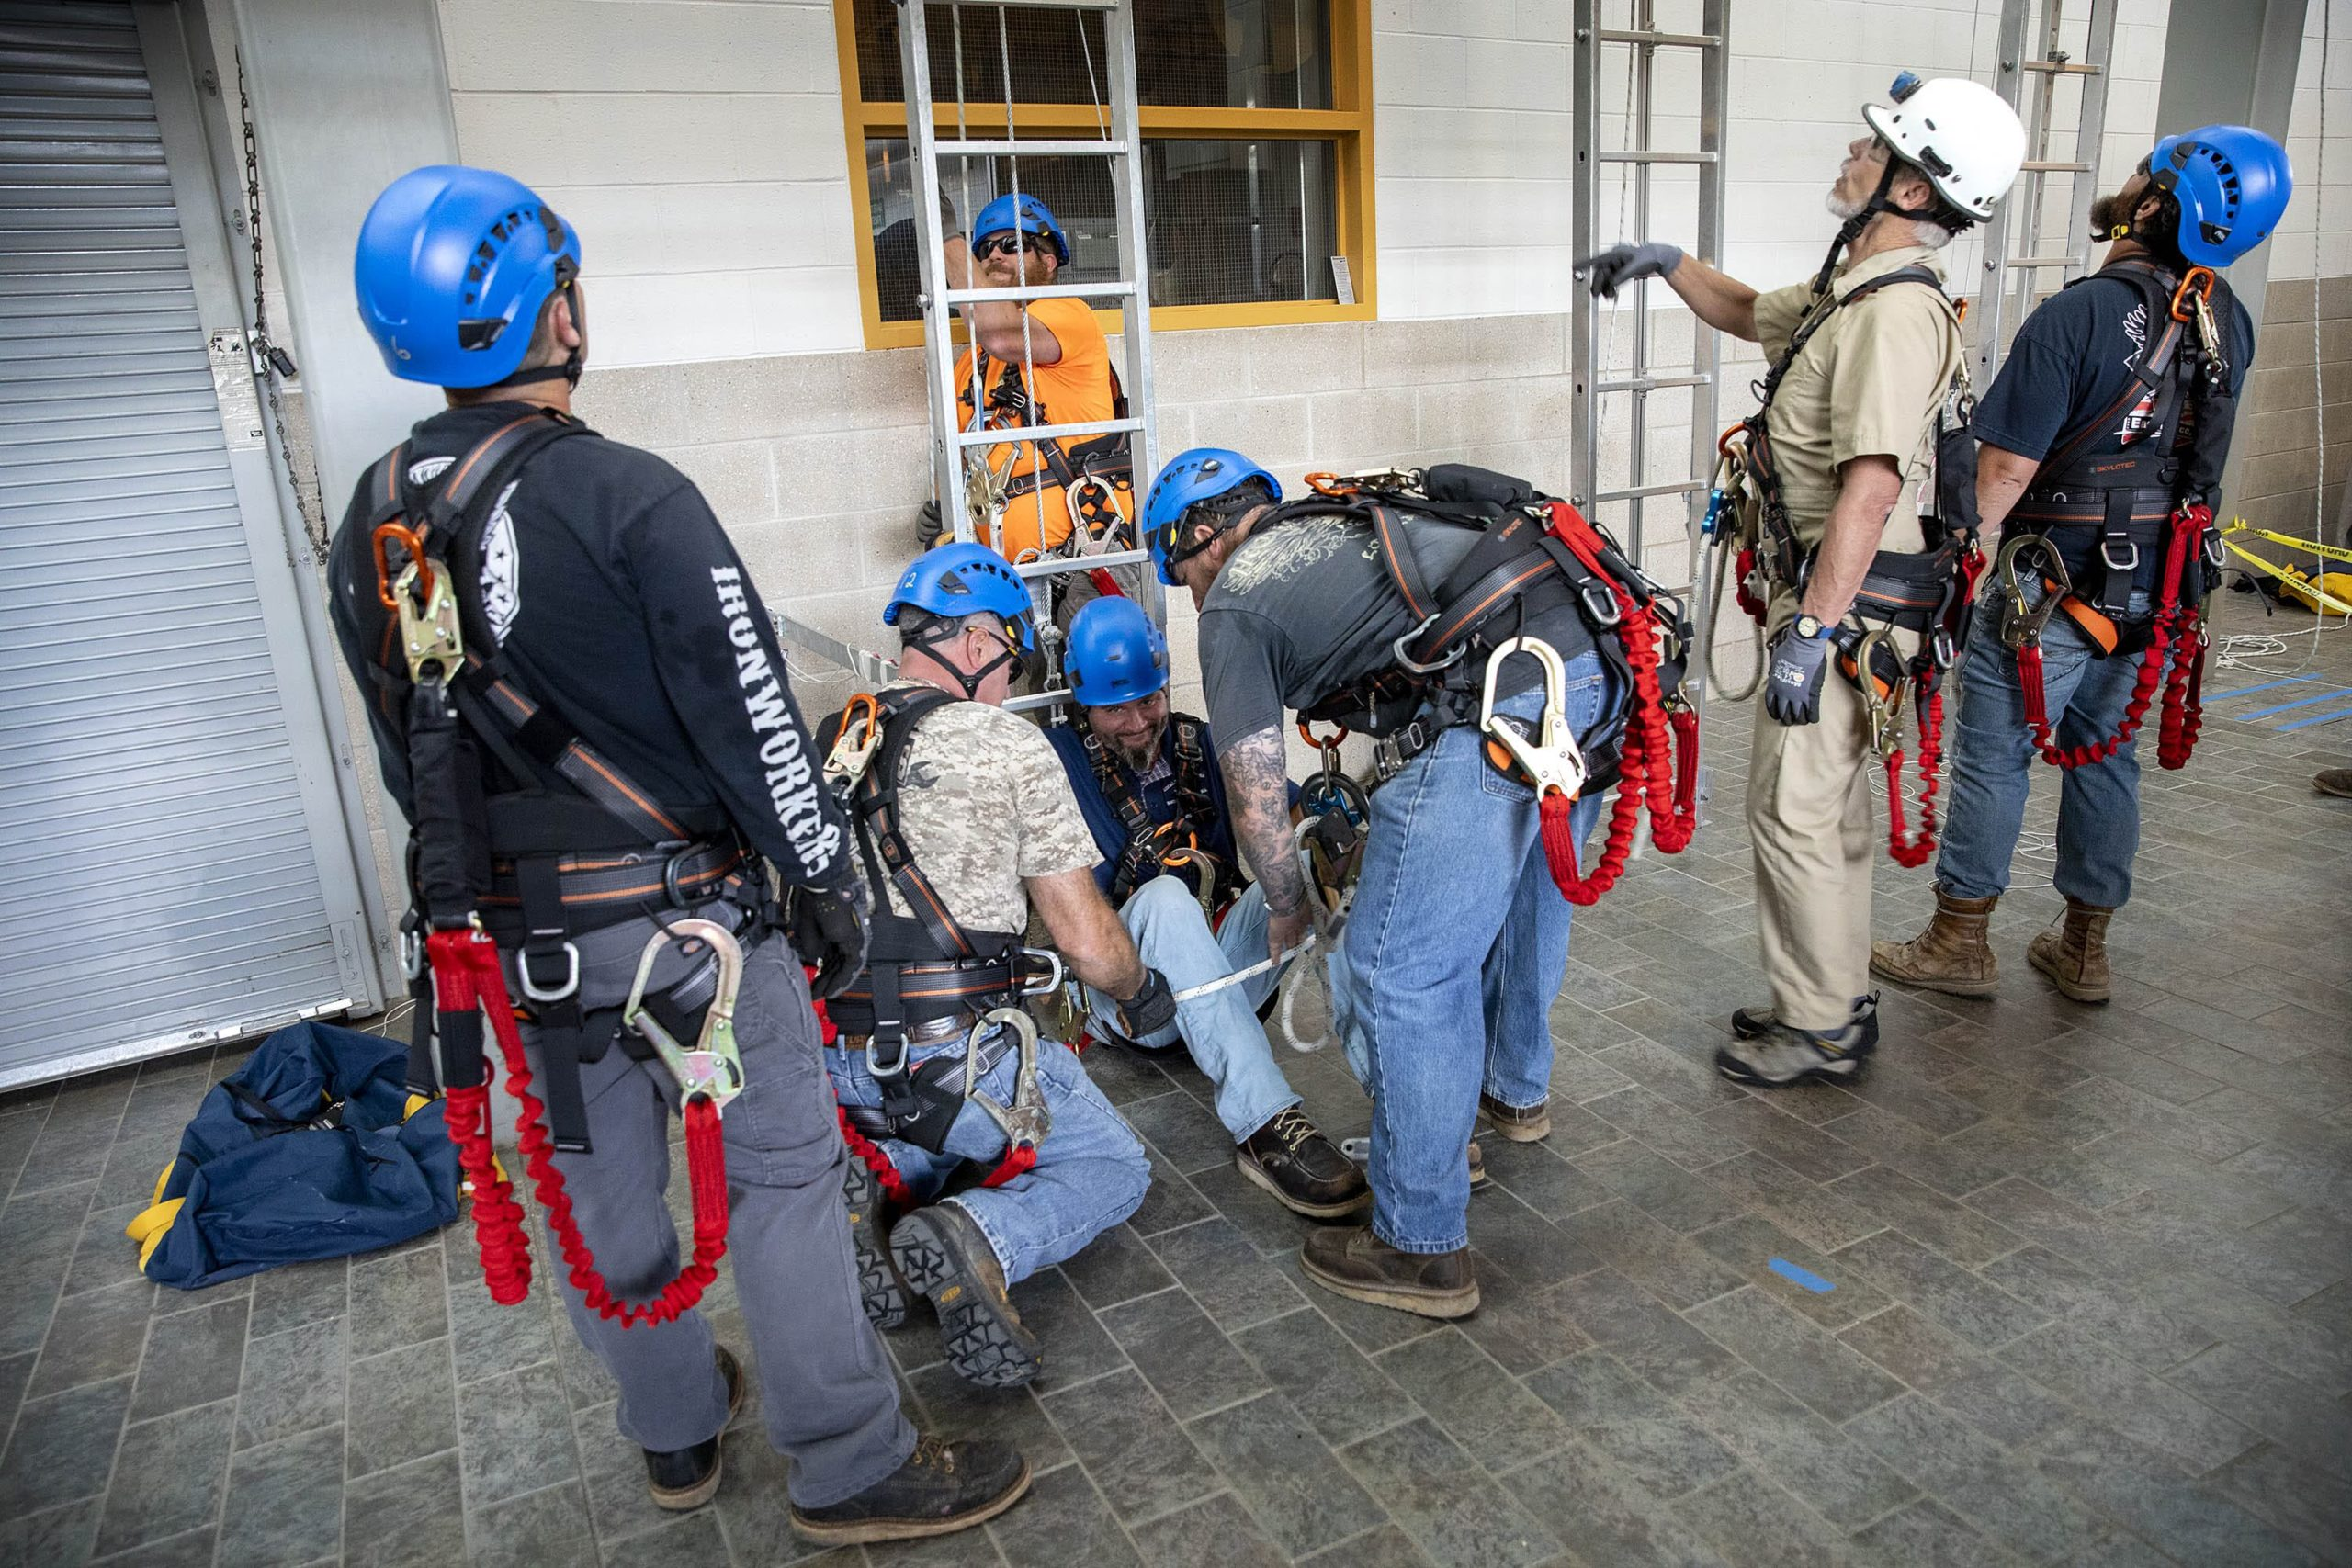 Ironworkers practice lowering an injured colleague to the ground. (Robin Lubbock/WBUR)